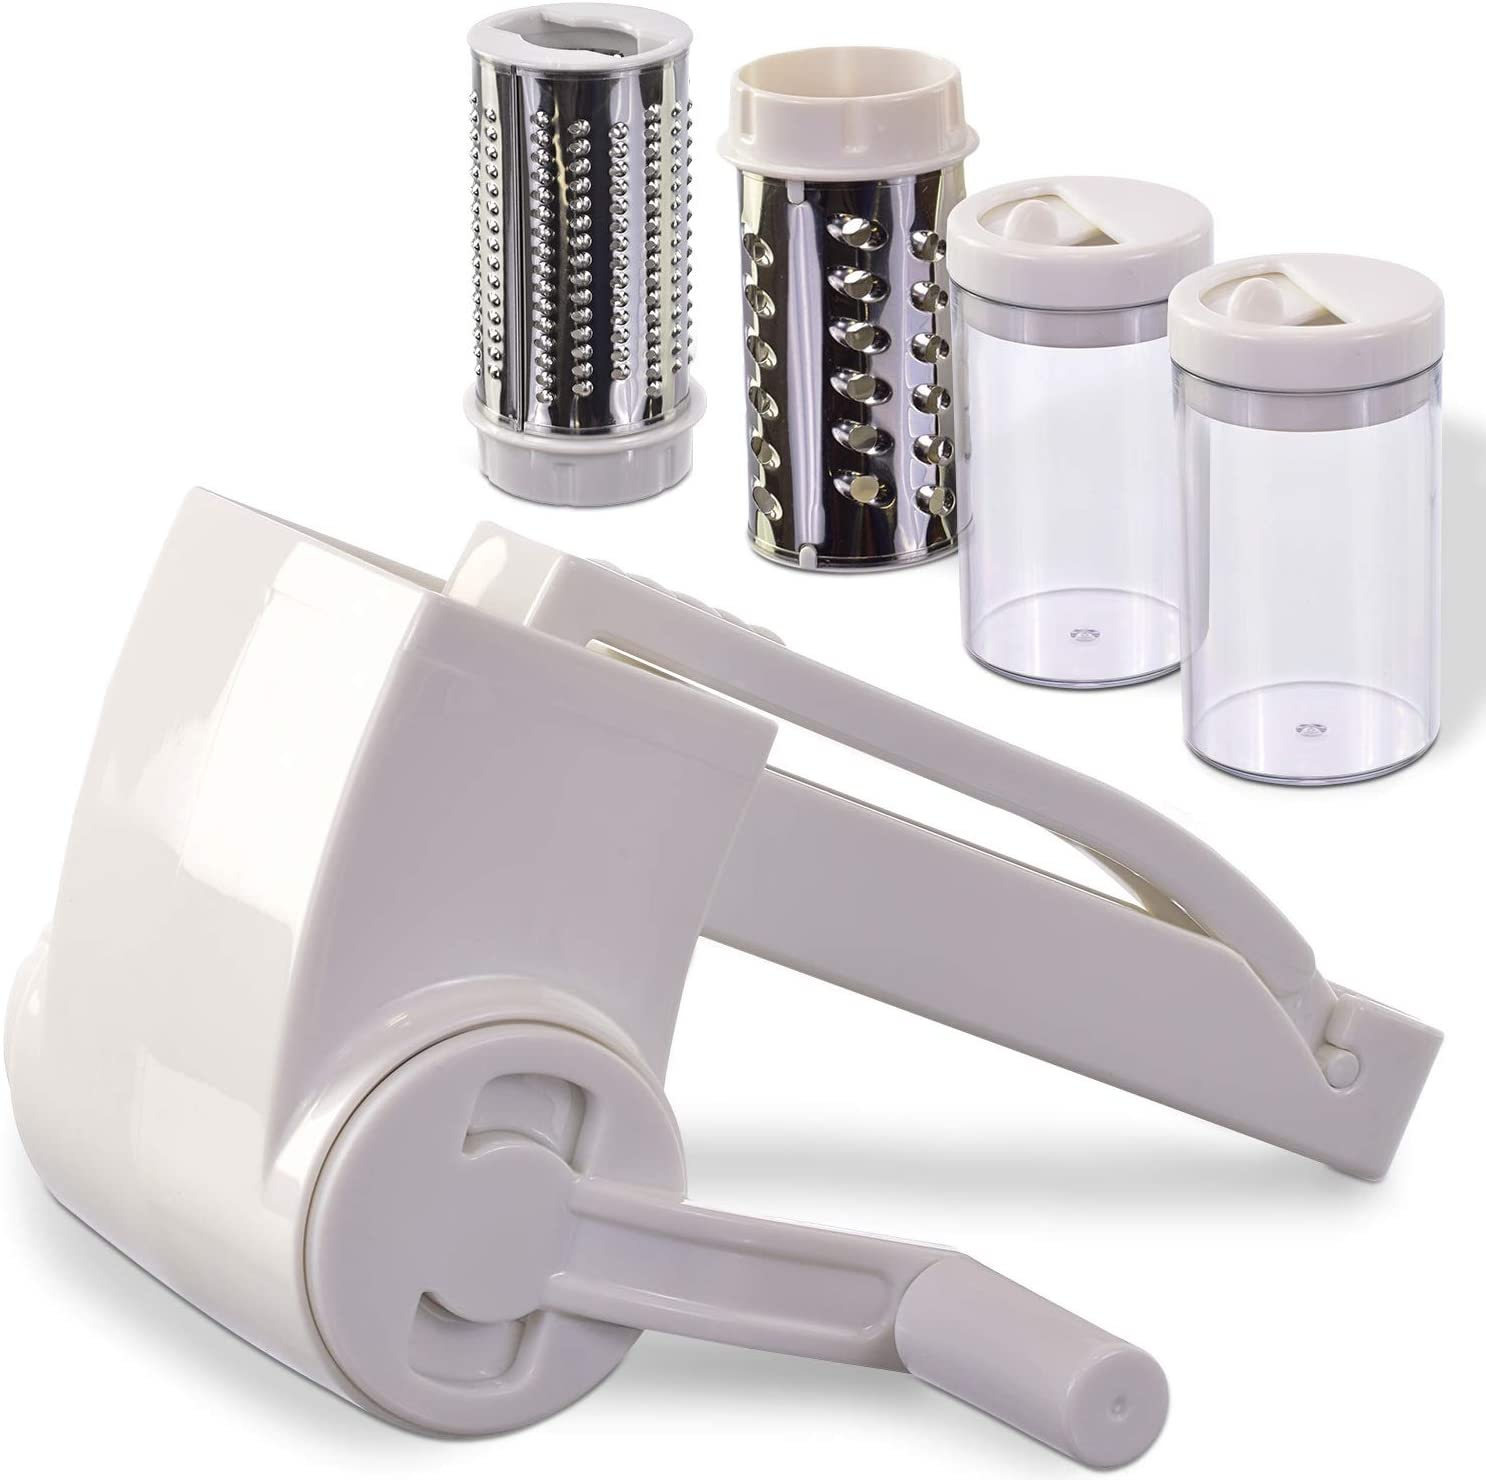 Rotary grater with its 2 spare drums and 2 storage containers